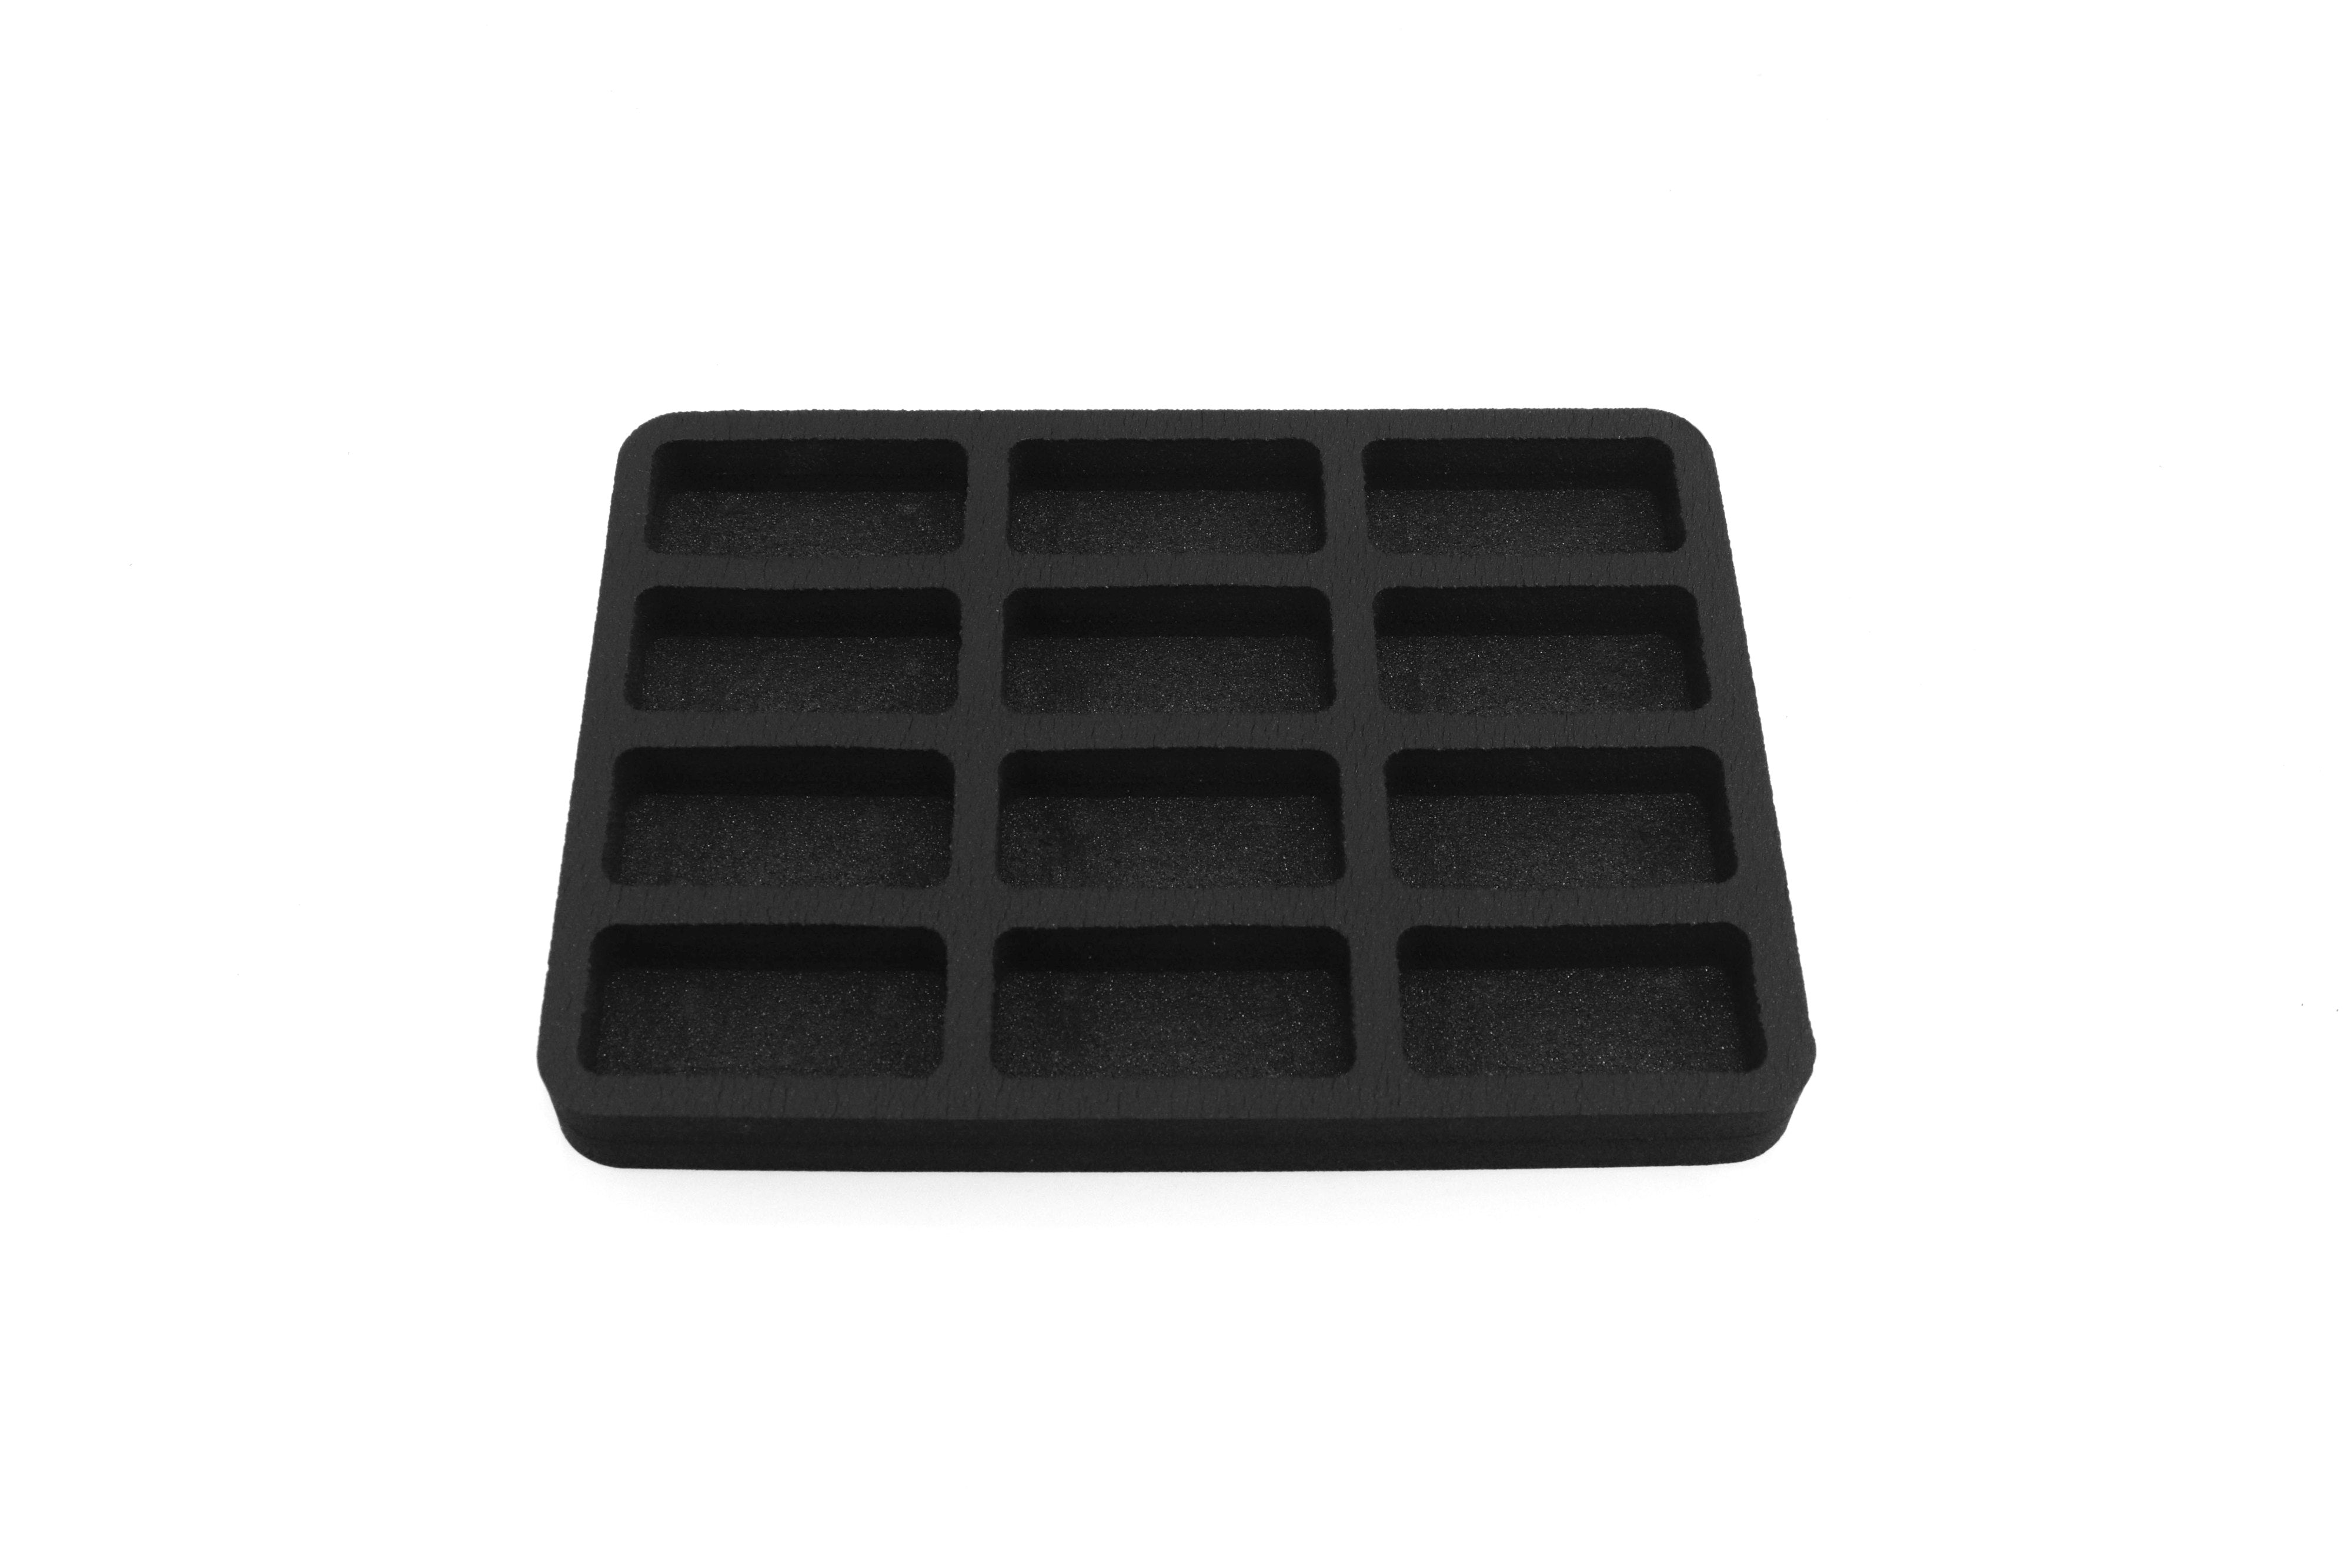 3 Toy Car Drawer Organizers Compatible with Hot Wheels and Matchbox Cars 7.9 x 10.9 x 1 Inches Black Foam 12 Compartments